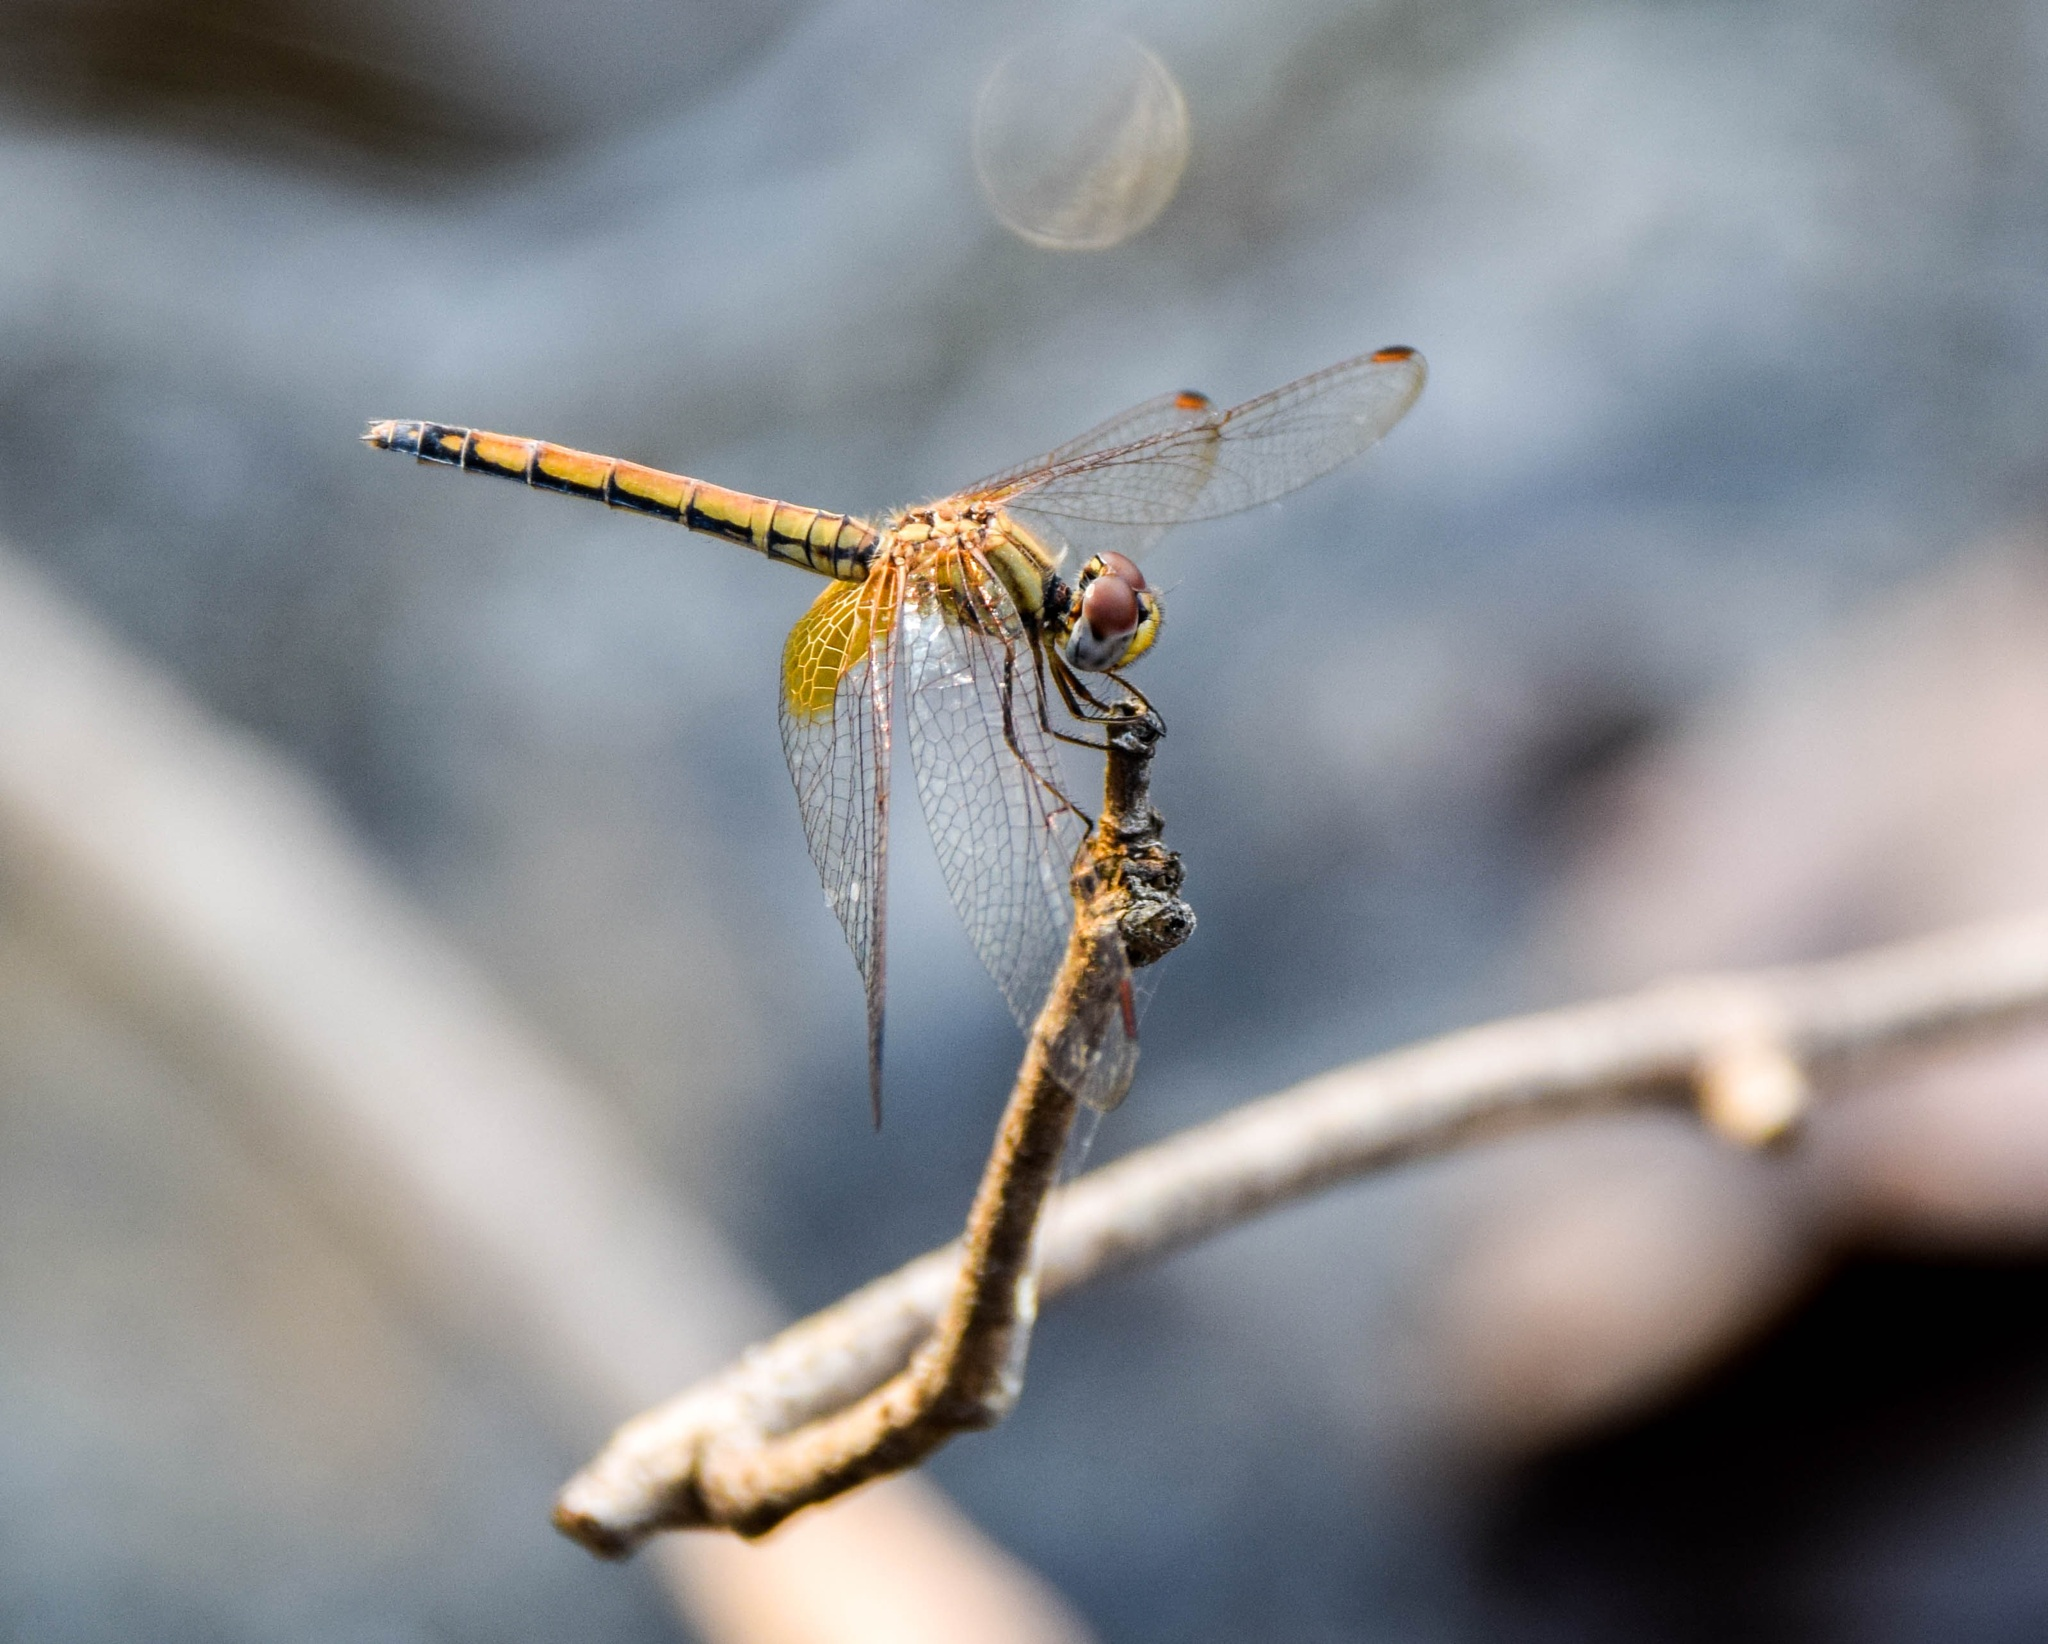 Dragonfly by ananthatejas